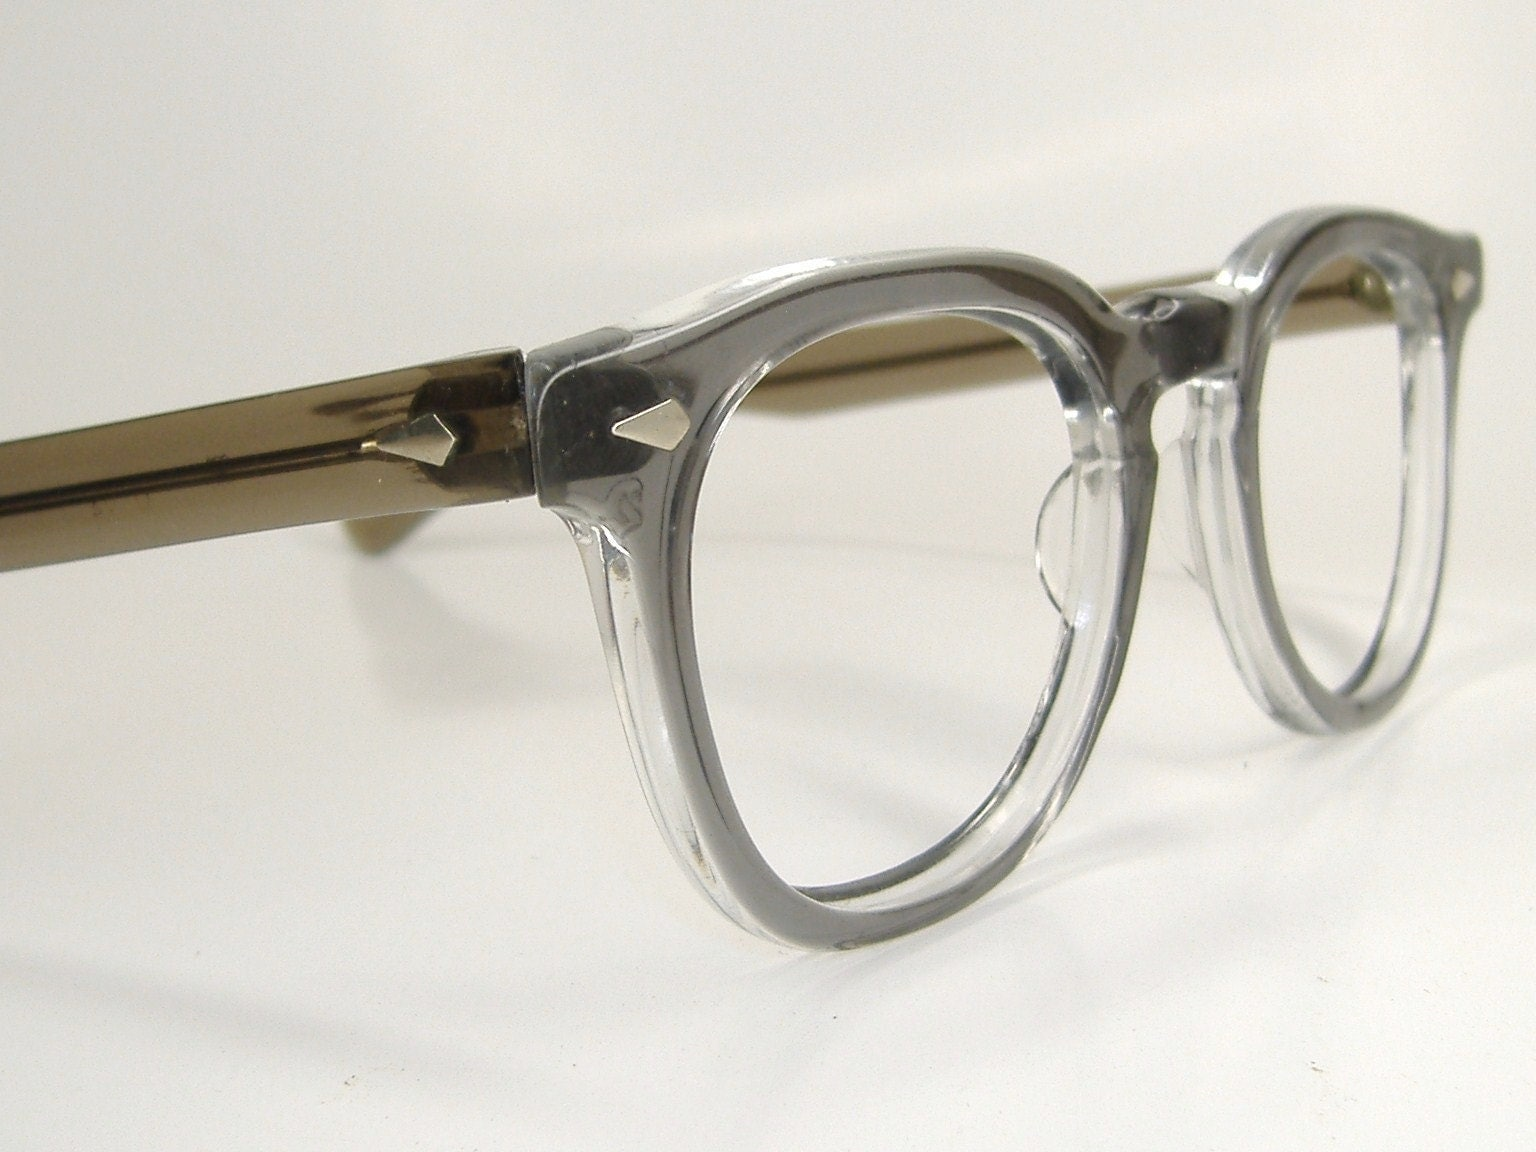 Eyeglass Frames Vintage : Vintage Tart Optical Mens Eyeglasses Frames by ...